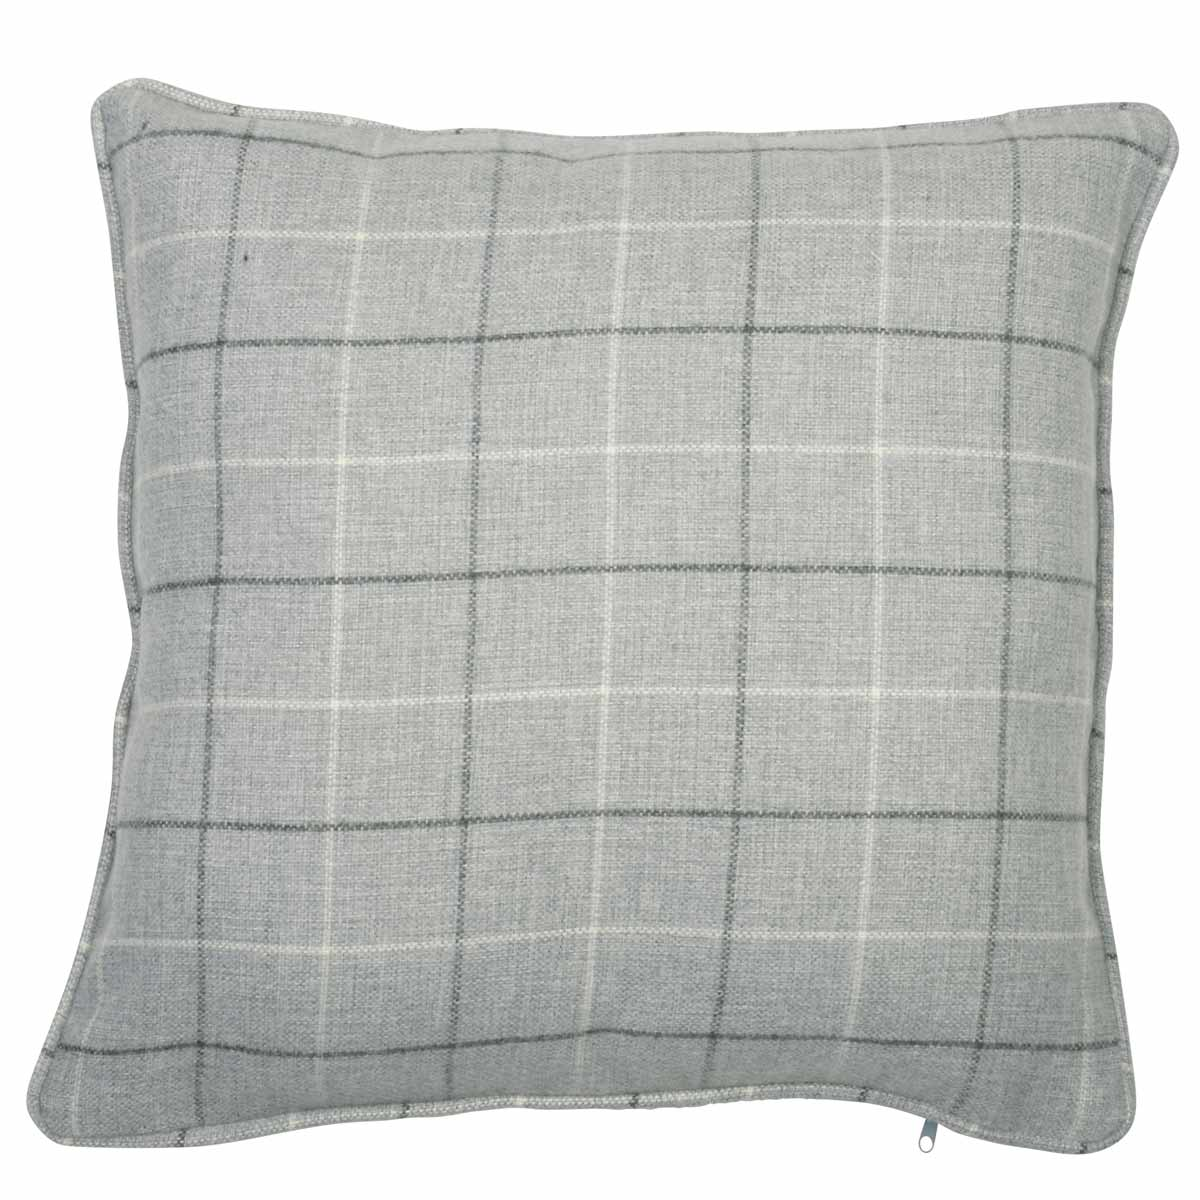 J Rosenthal Cushions And Throws  Braemar Check C/Cover Charcoal